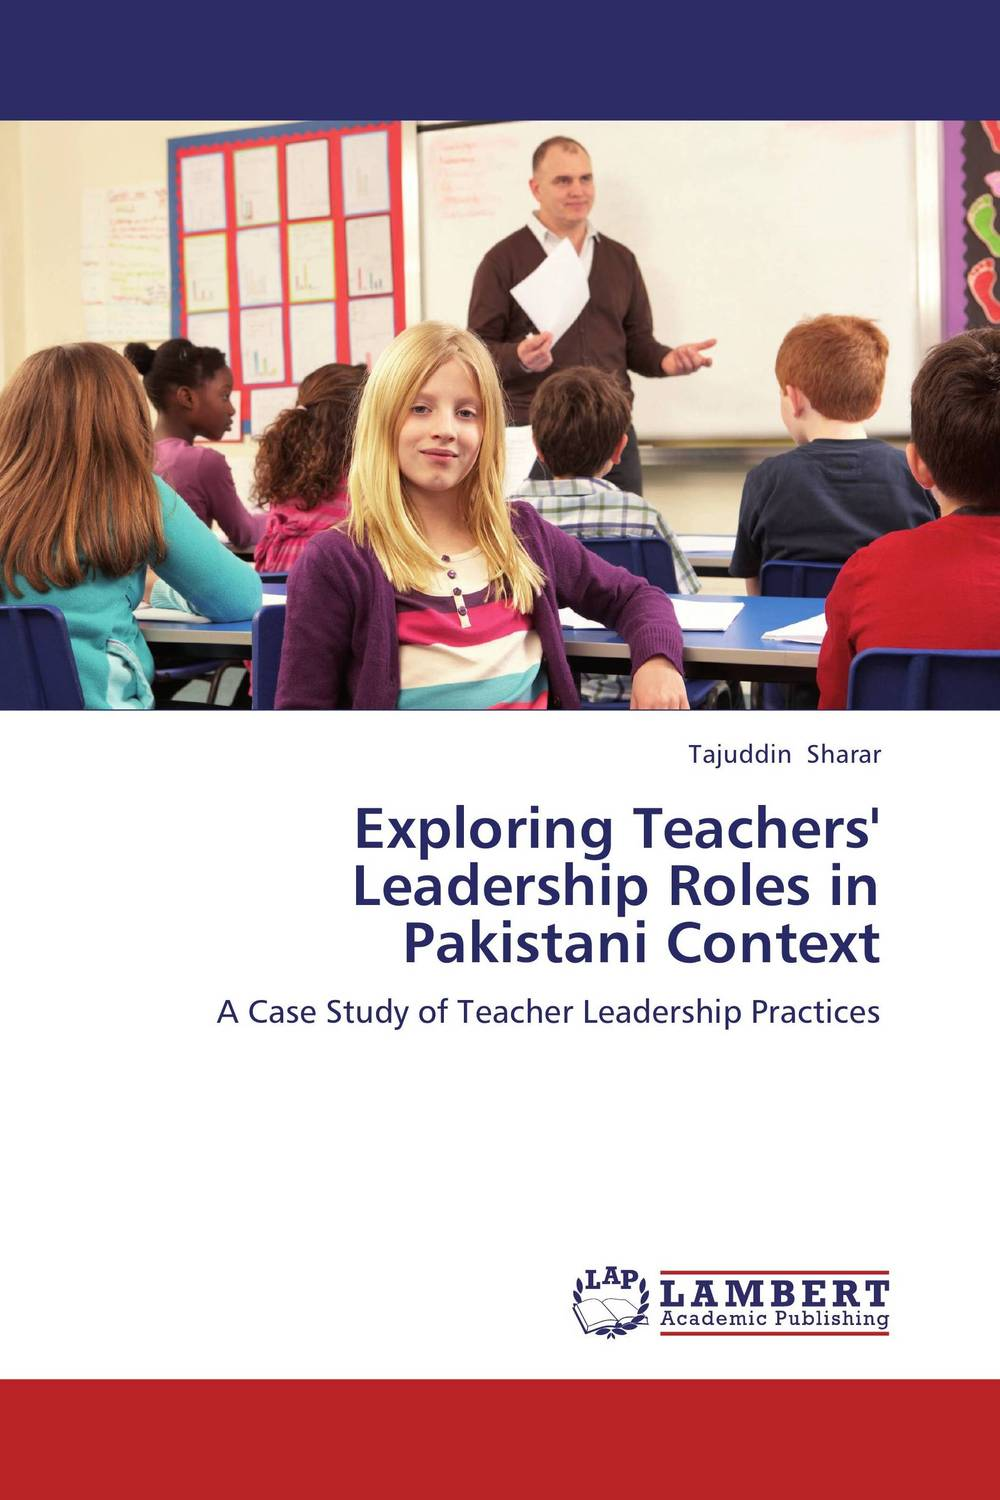 Exploring Teachers' Leadership Roles in Pakistani Context michael bunting extraordinary leadership in australia and new zealand the five practices that create great workplaces